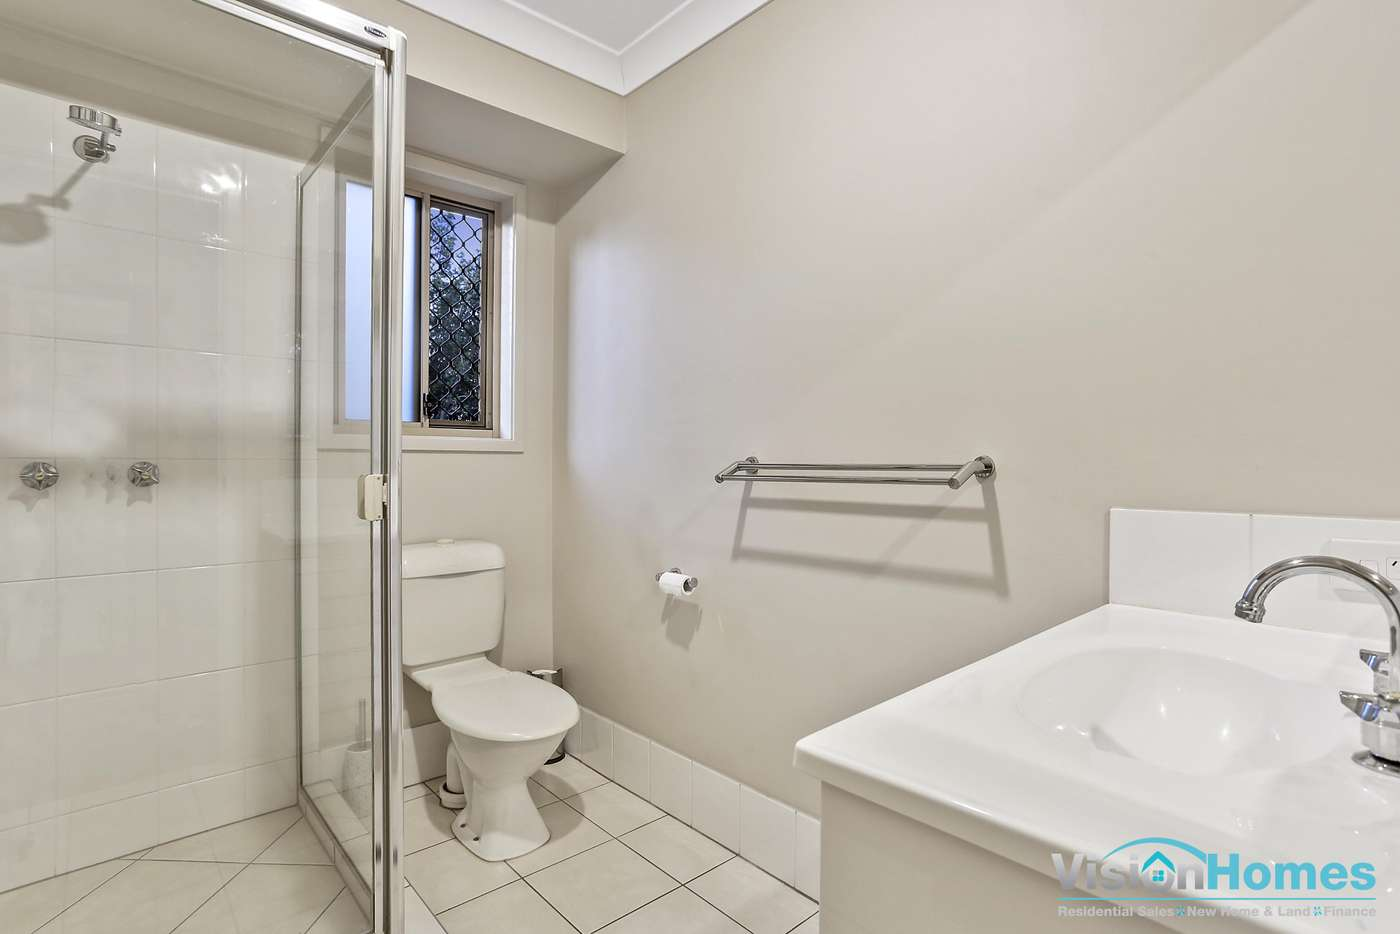 Sixth view of Homely house listing, 52 ARGULE STREET, Hillcrest QLD 4118